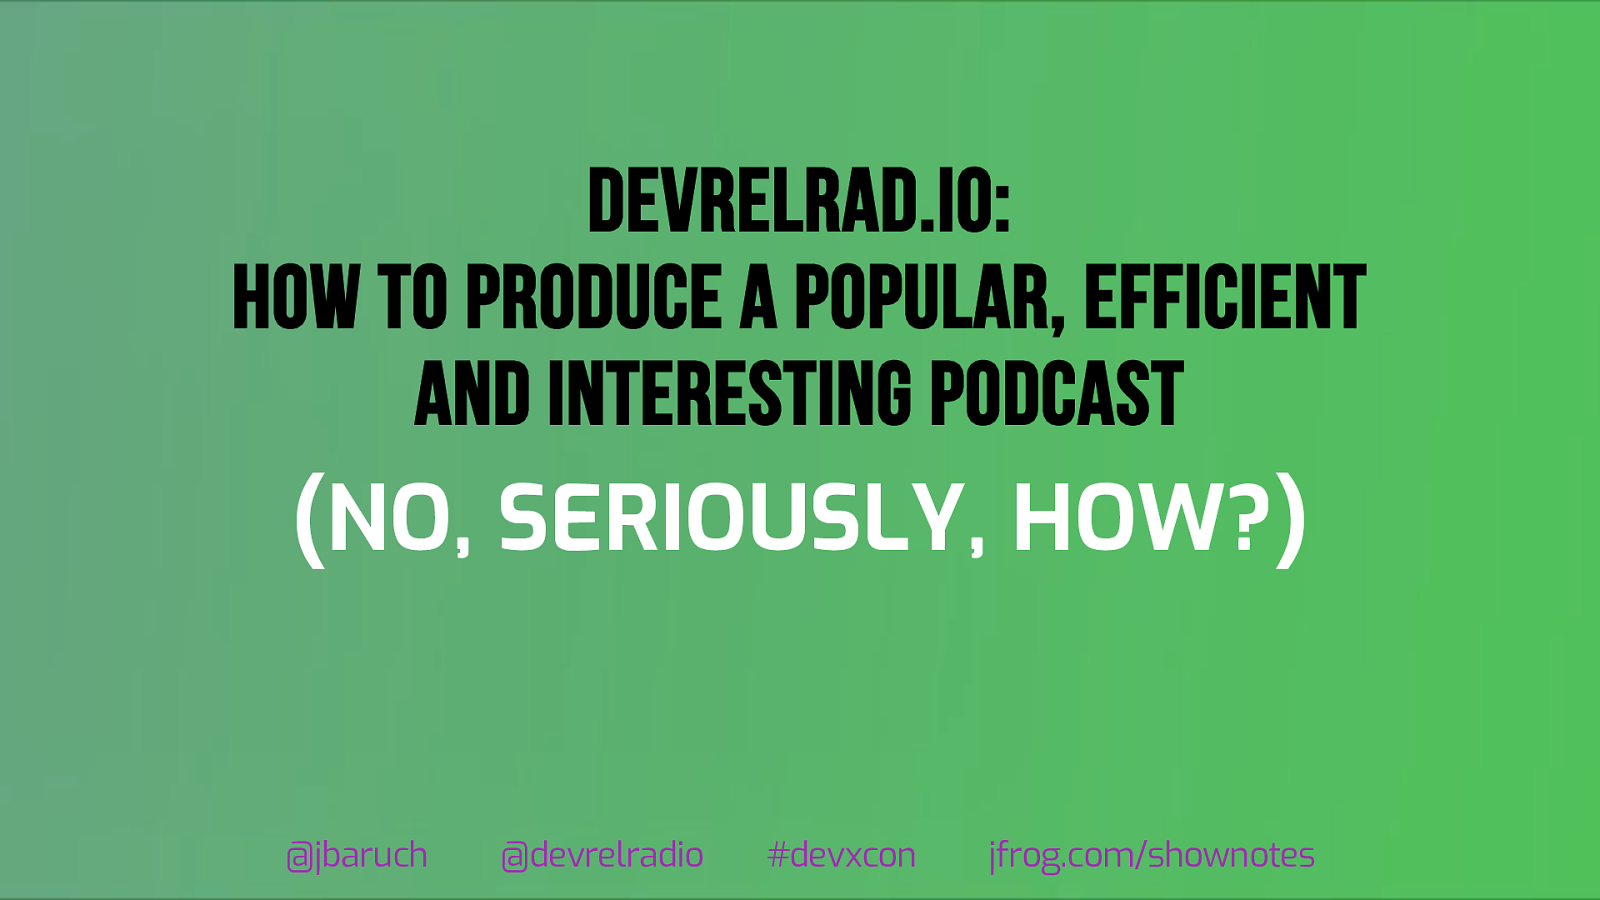 DevRelRad.io: how to produce a popular, efficient and interesting podcast (no, seriously, how?)